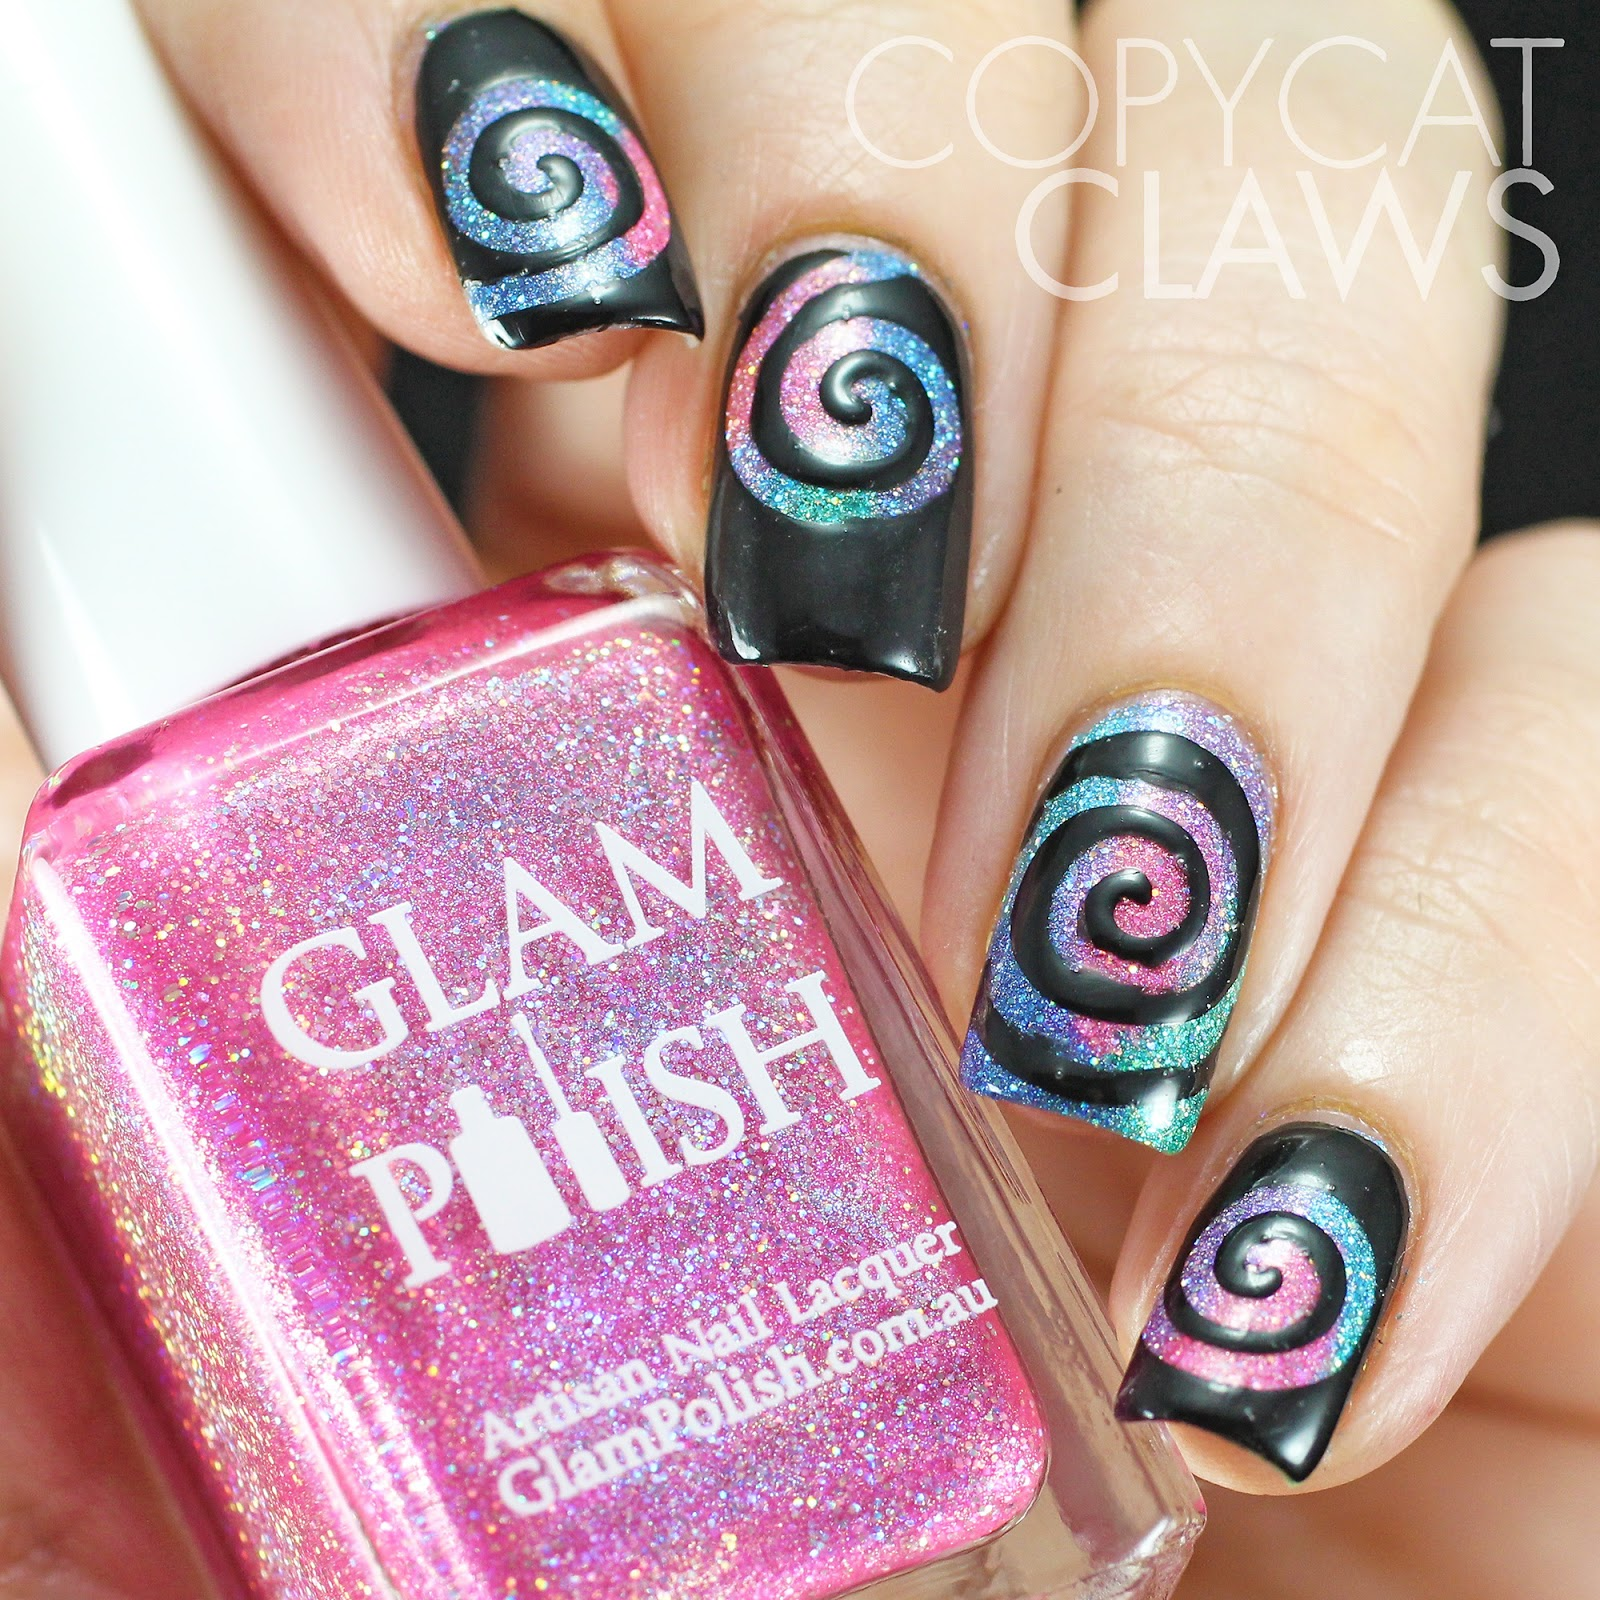 copycat claws swirl nail stencils over glam polish. Black Bedroom Furniture Sets. Home Design Ideas